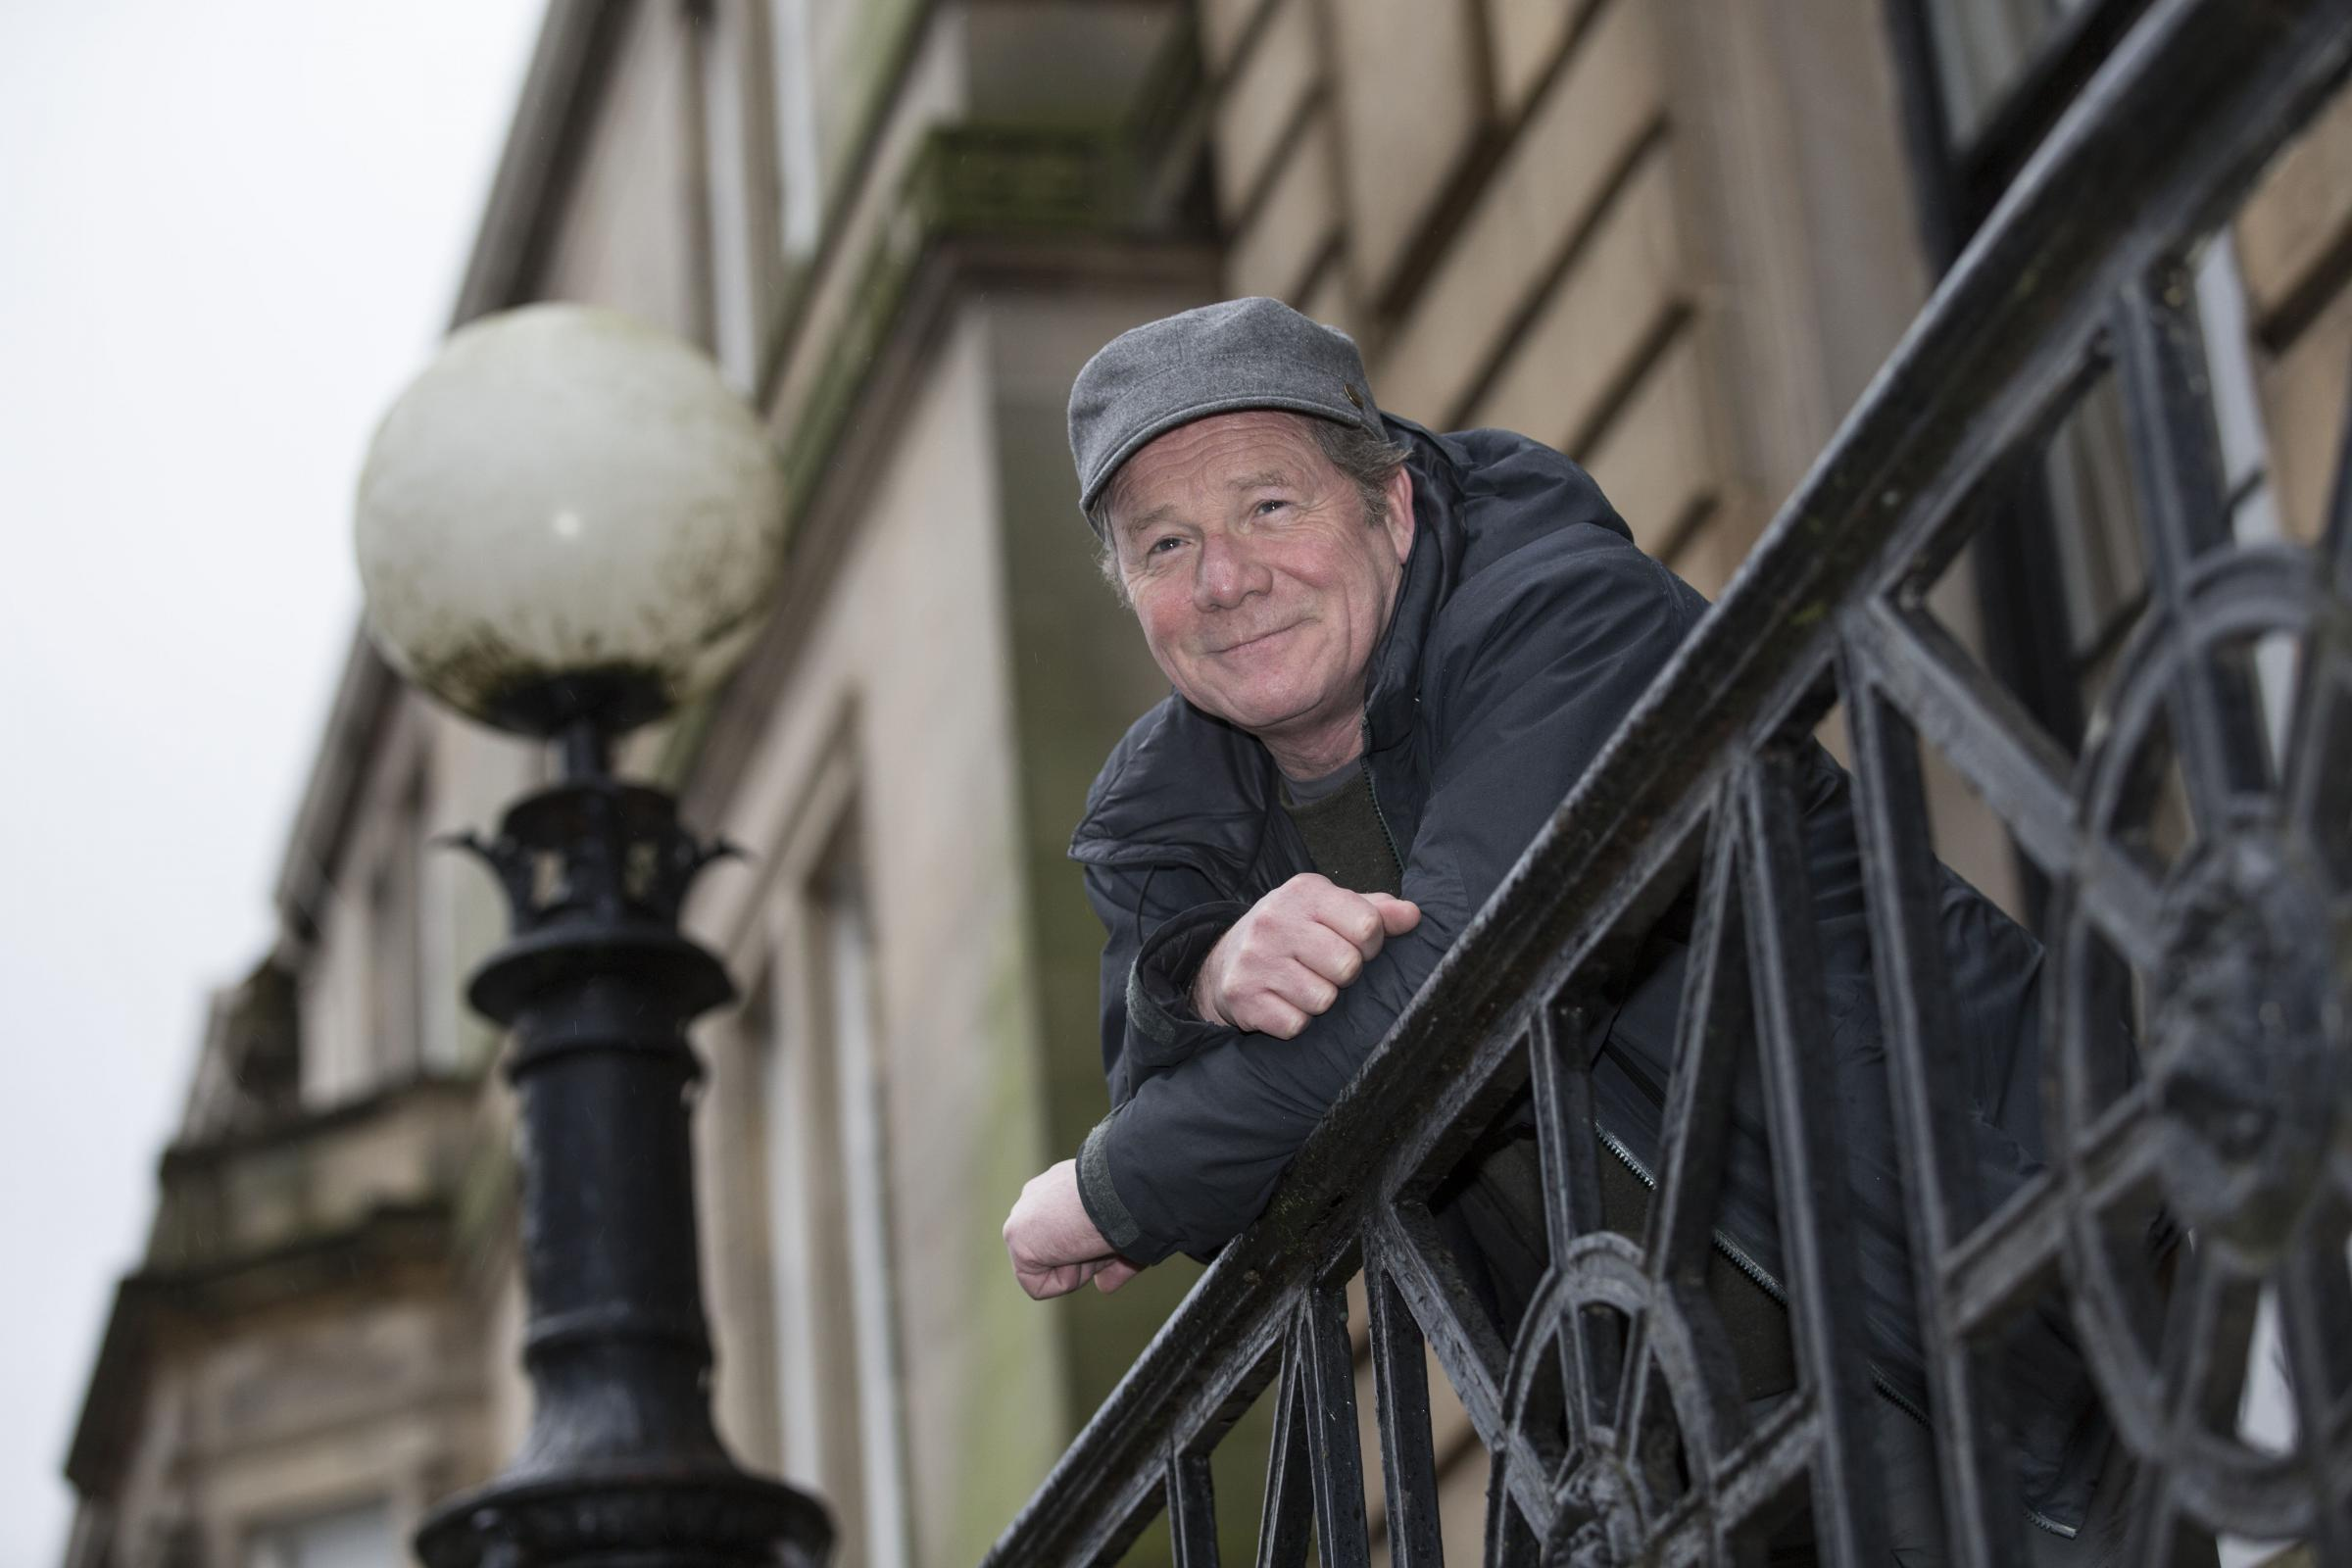 Peter Mullan outside the Trinity Building in Glasgow promoting his new film Hector